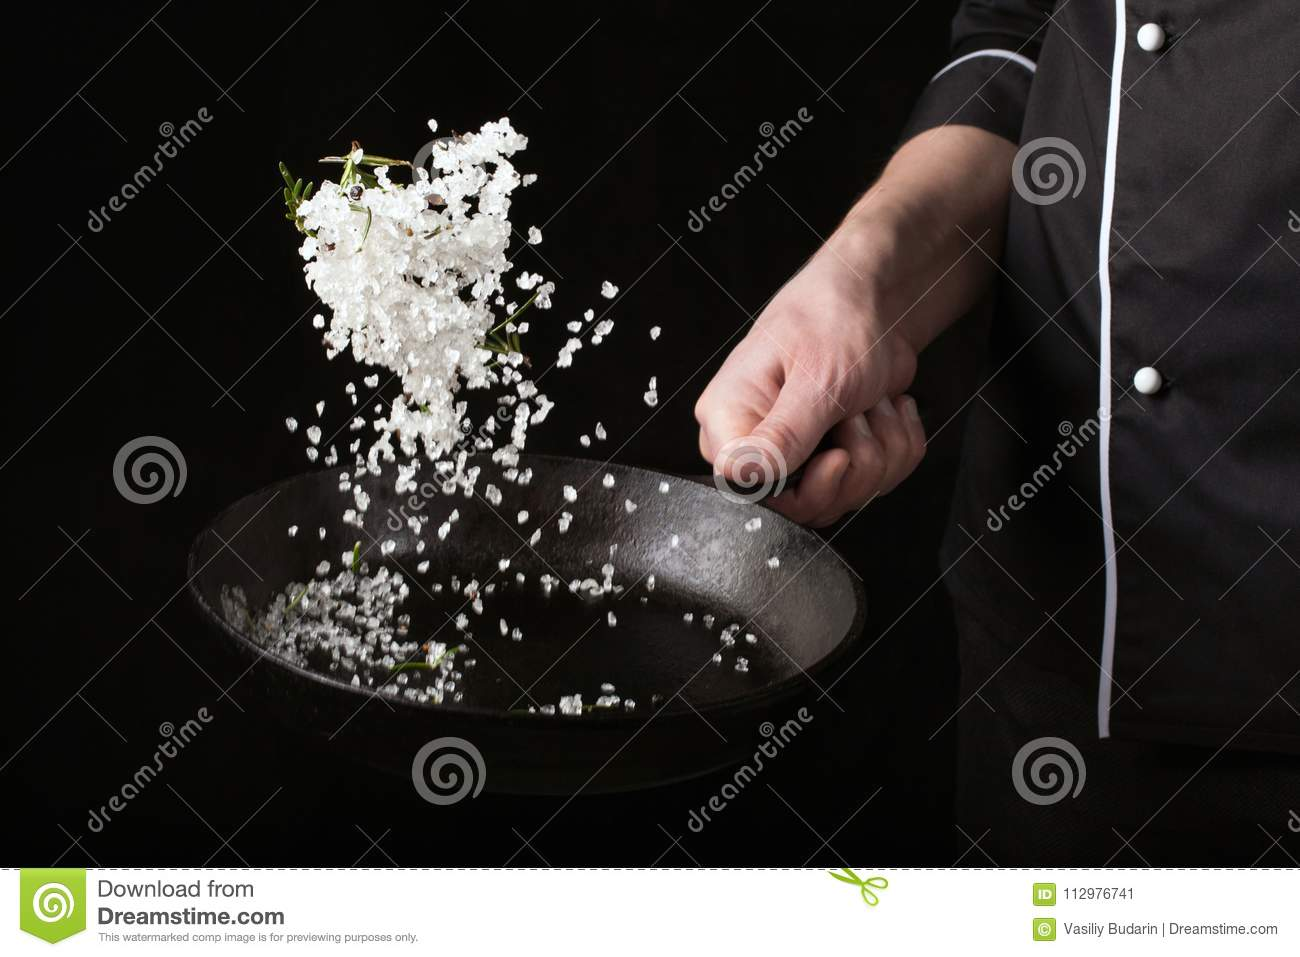 Cooking roasted aromatic salt in a pan by chef hand. Horizontal photo view. Dark black background with copy text area